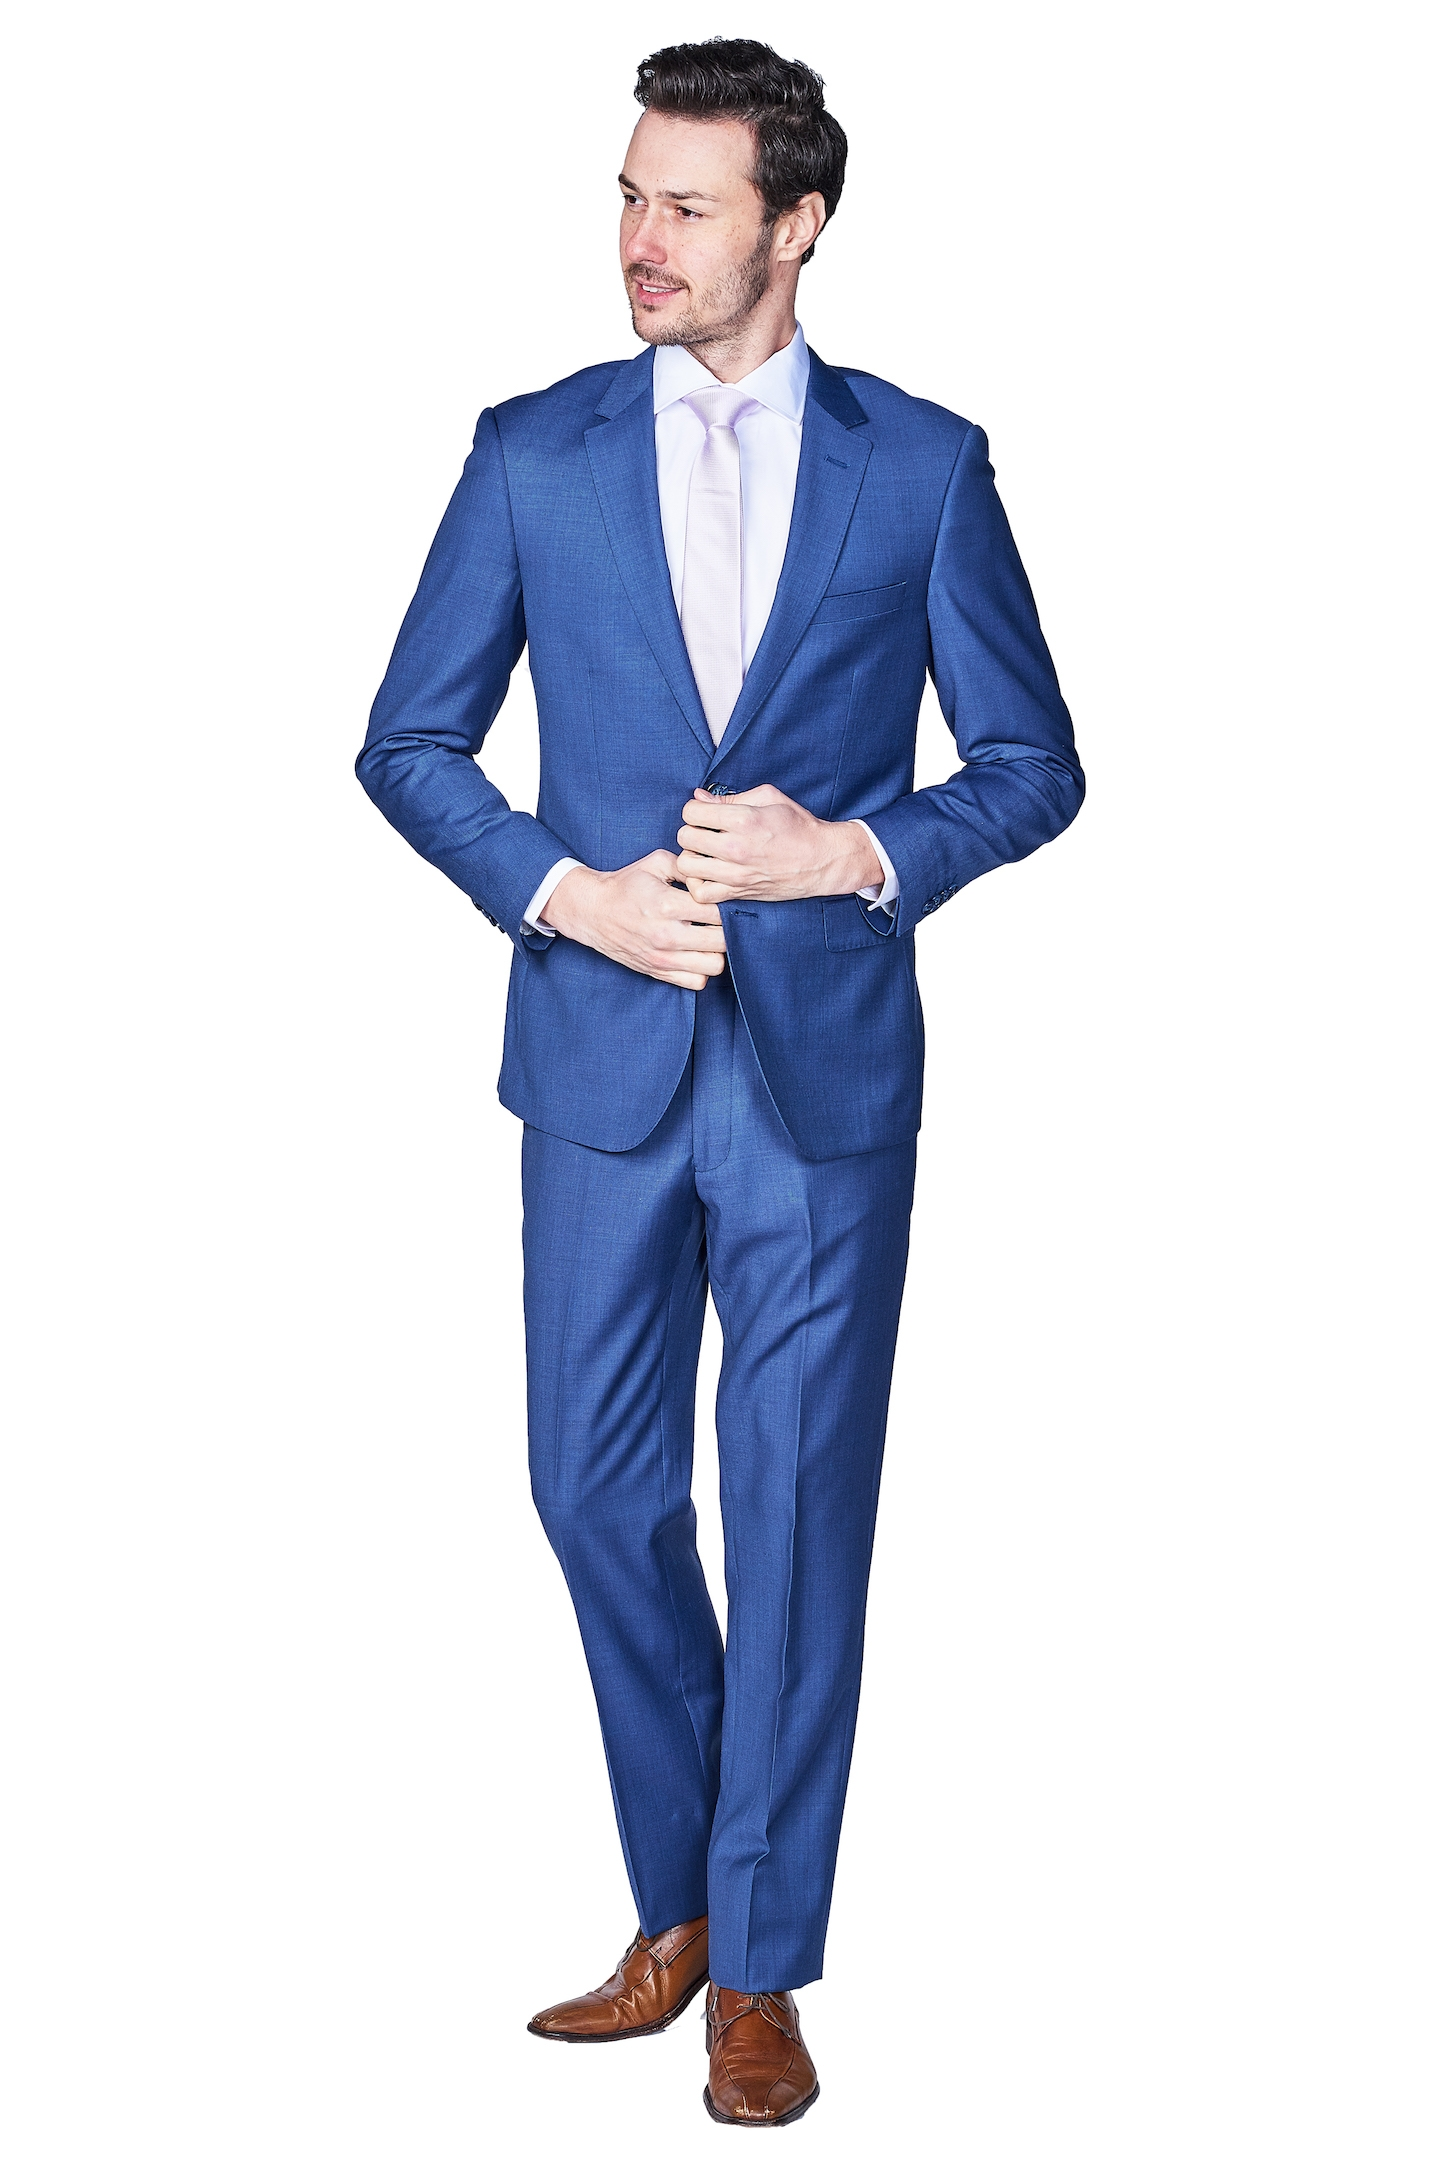 SRG Fashion – Men\'s suits, sport jackets, tuxedos, and more.